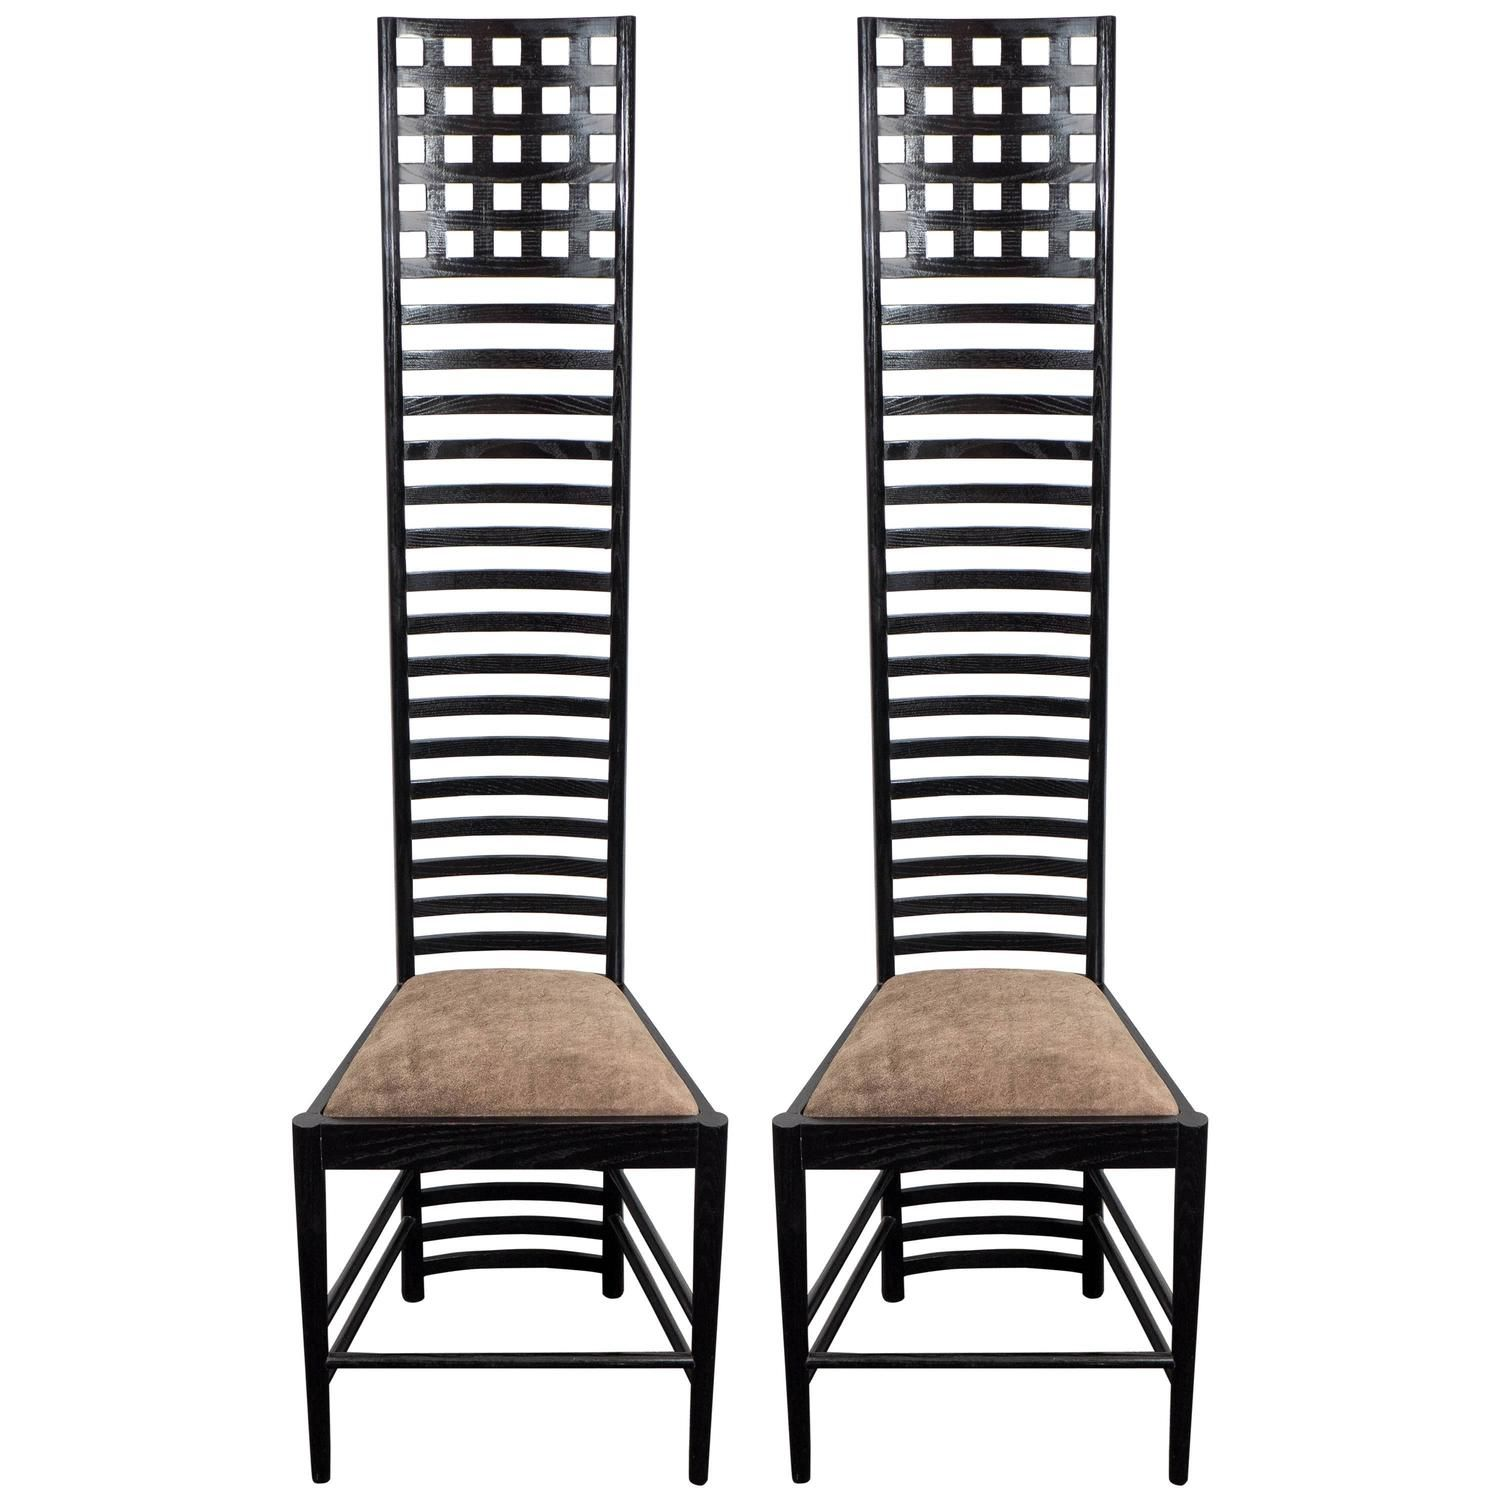 Attrayant Pair Of Mackintosh U0027Hill Houseu0027 Ladder Back Chairs With Suede Seats